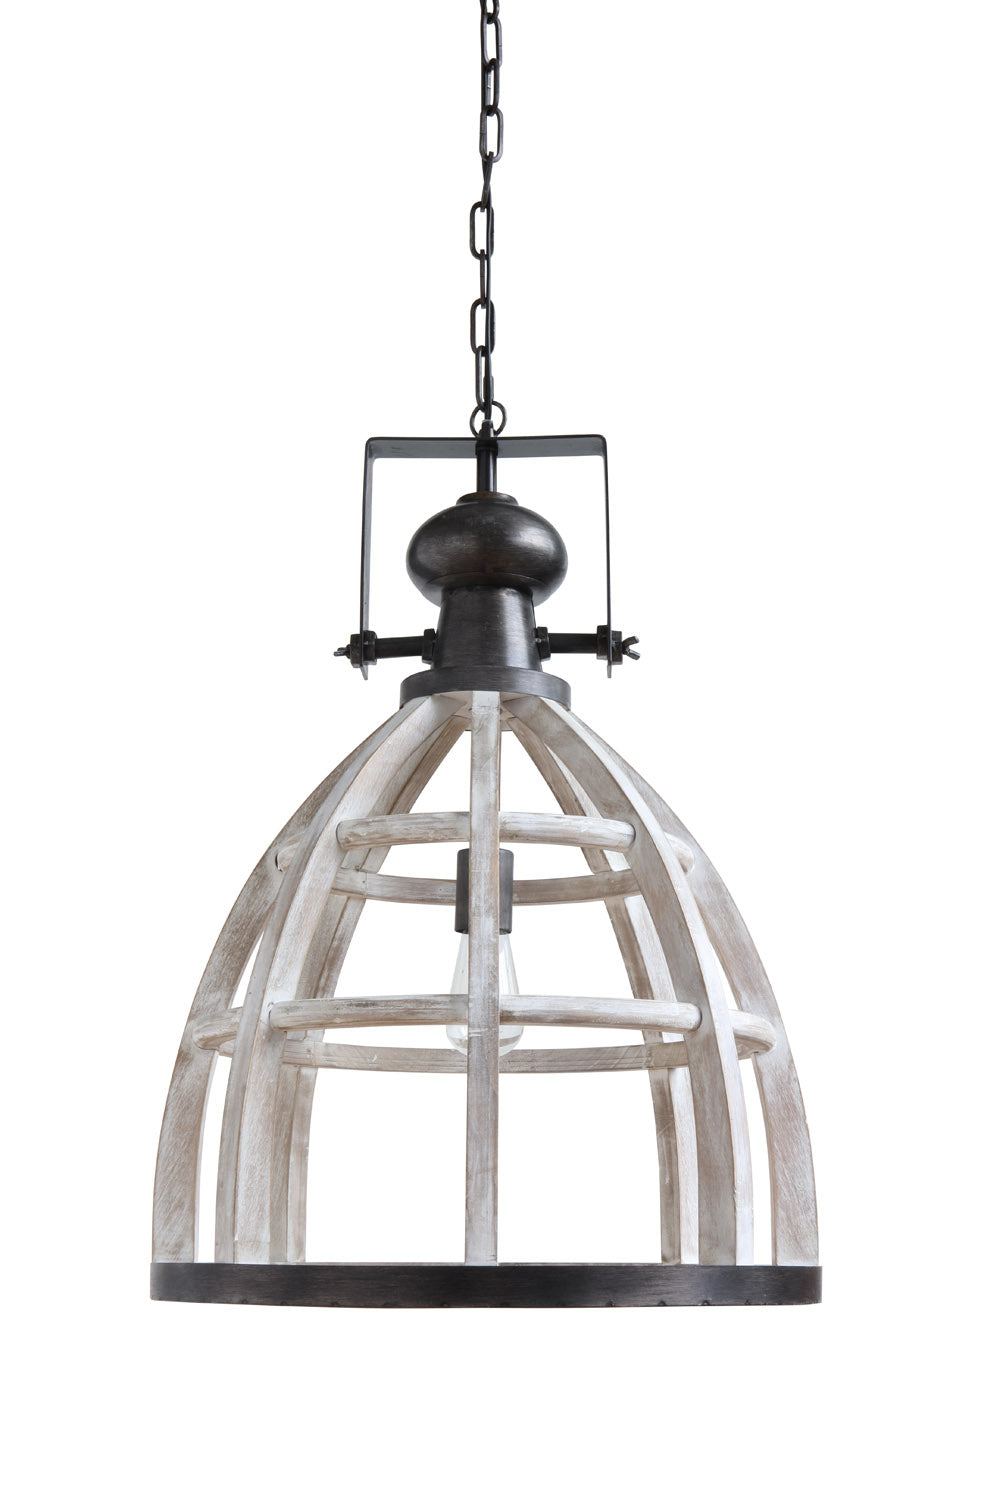 "18-3/4"" Round x 28""H Wood & Metal Pendant Lamp, 6' Chain & 10' Cord (40 Watt Bulb Maximum, Hardwire Only)"